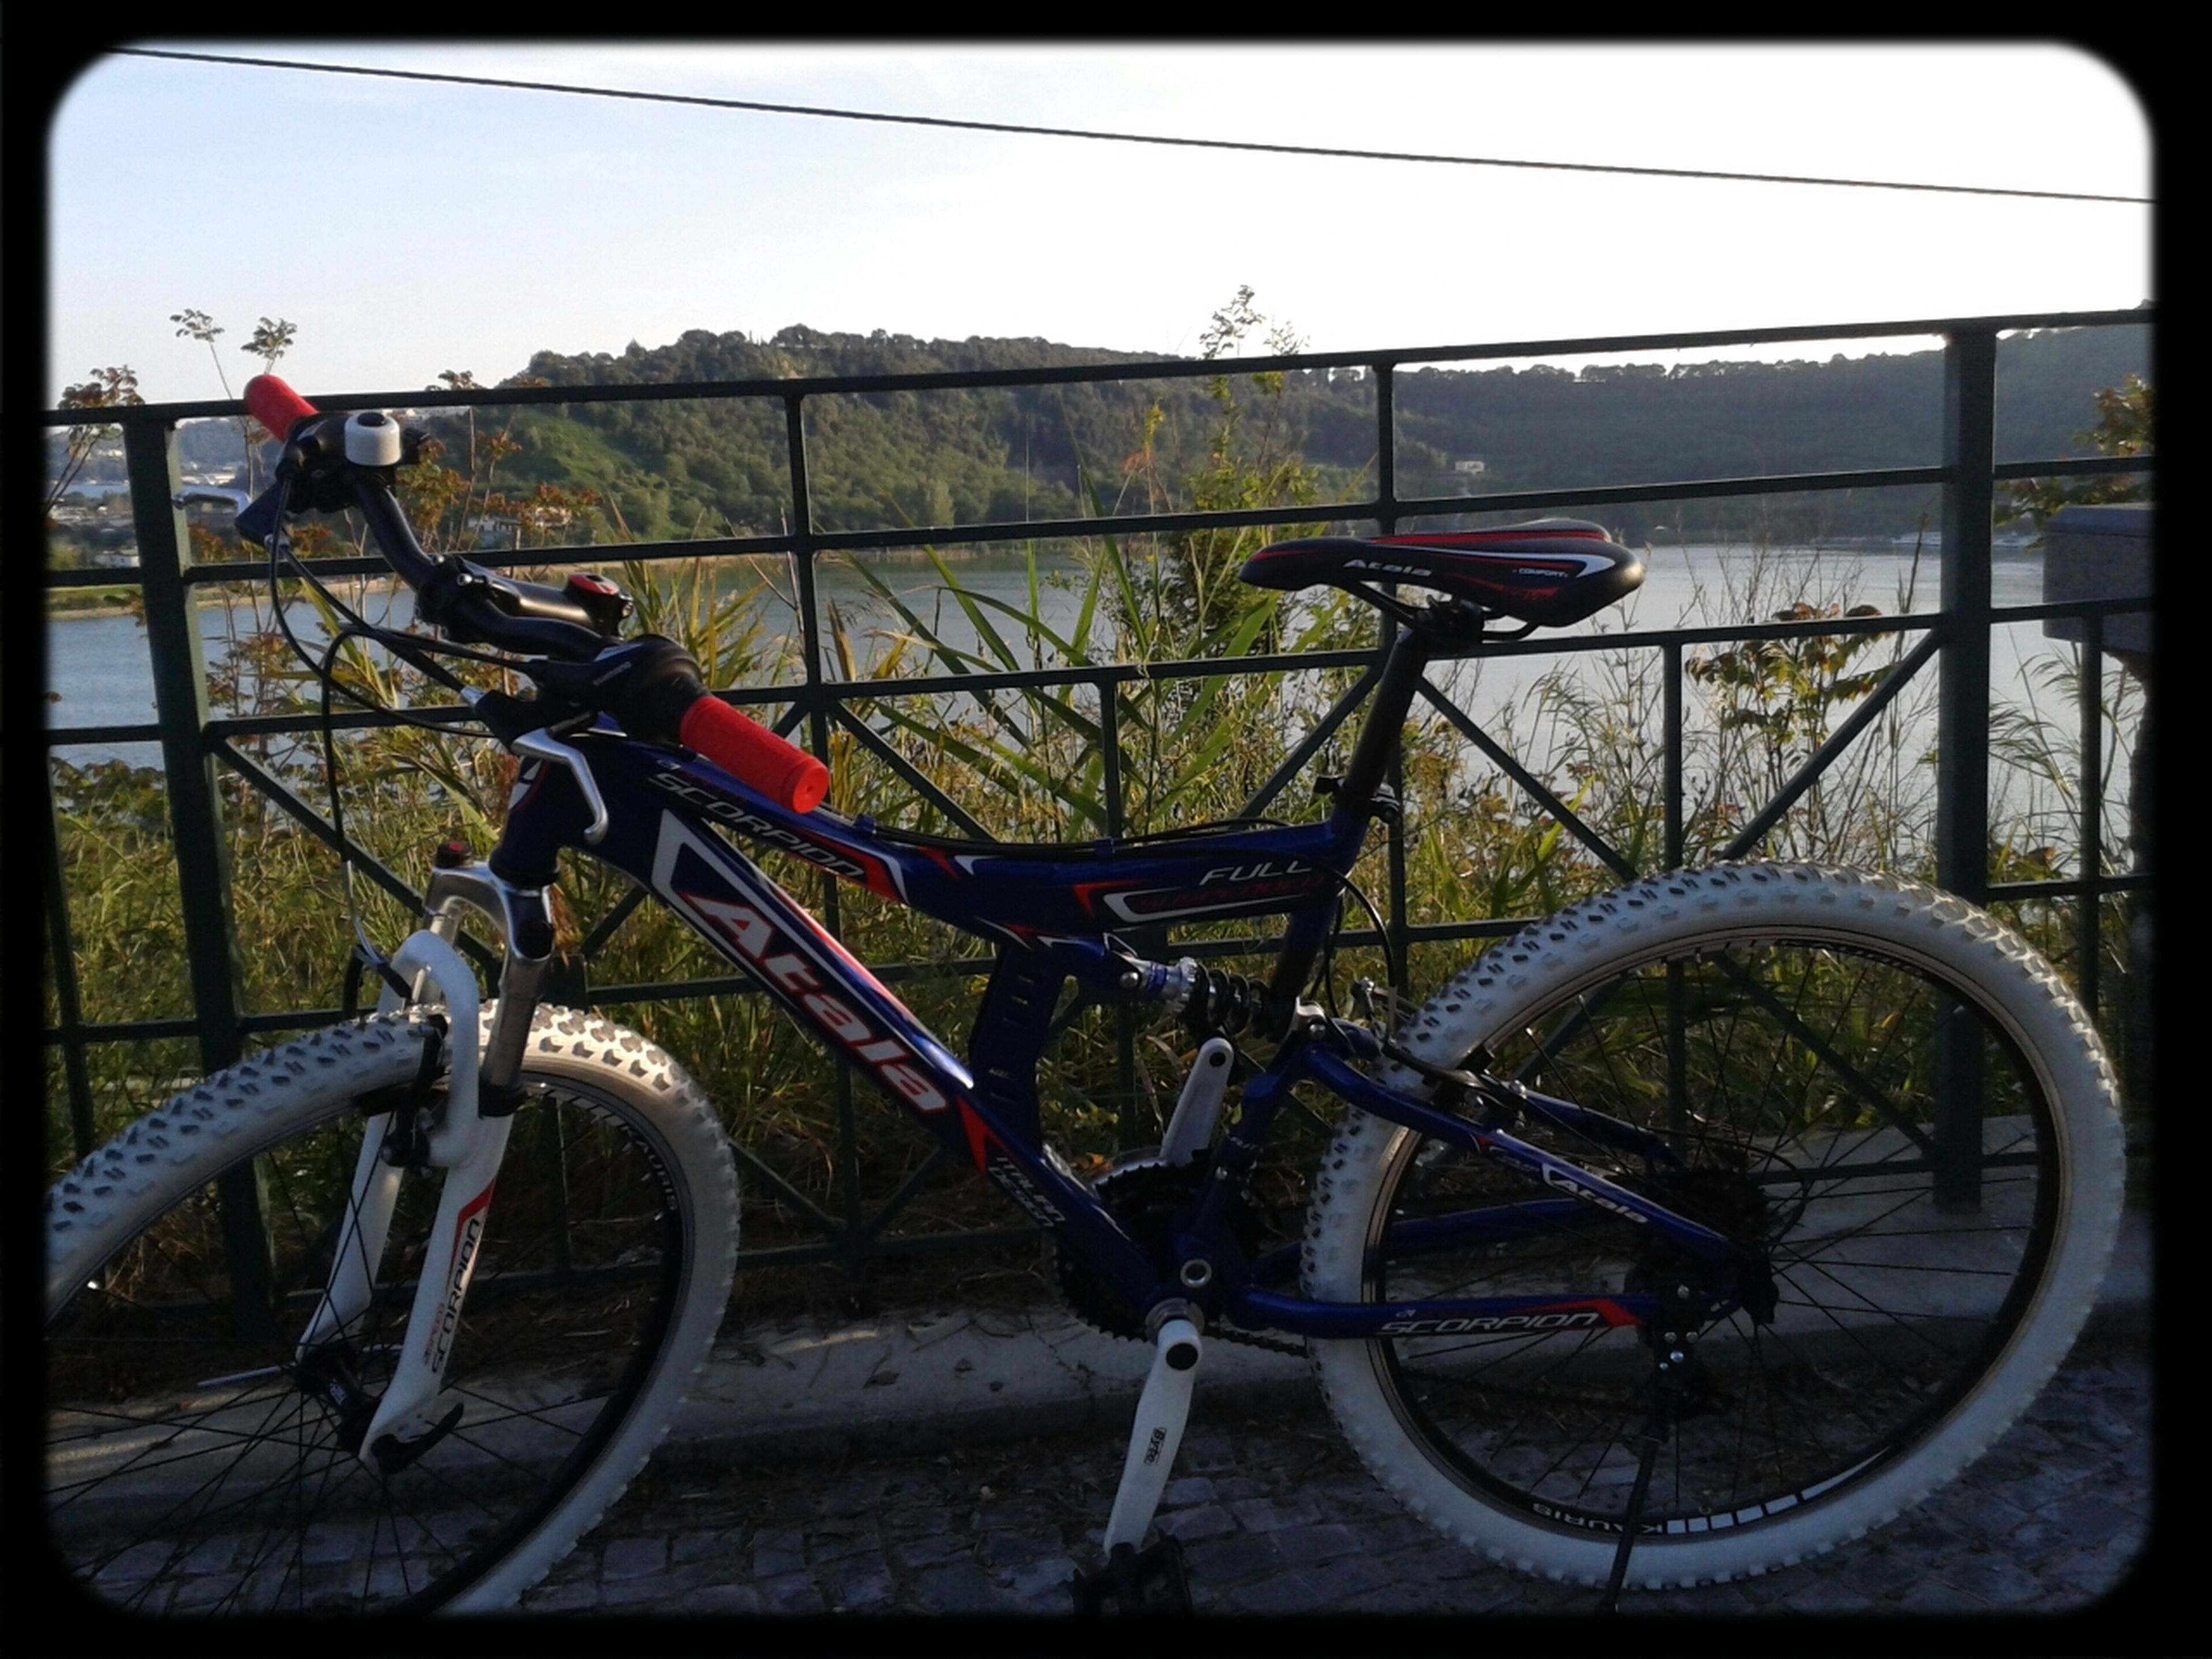 bicycle, transportation, mode of transport, land vehicle, transfer print, stationary, parked, auto post production filter, parking, car, travel, day, railing, outdoors, street, wheel, fence, riding, sky, cycle